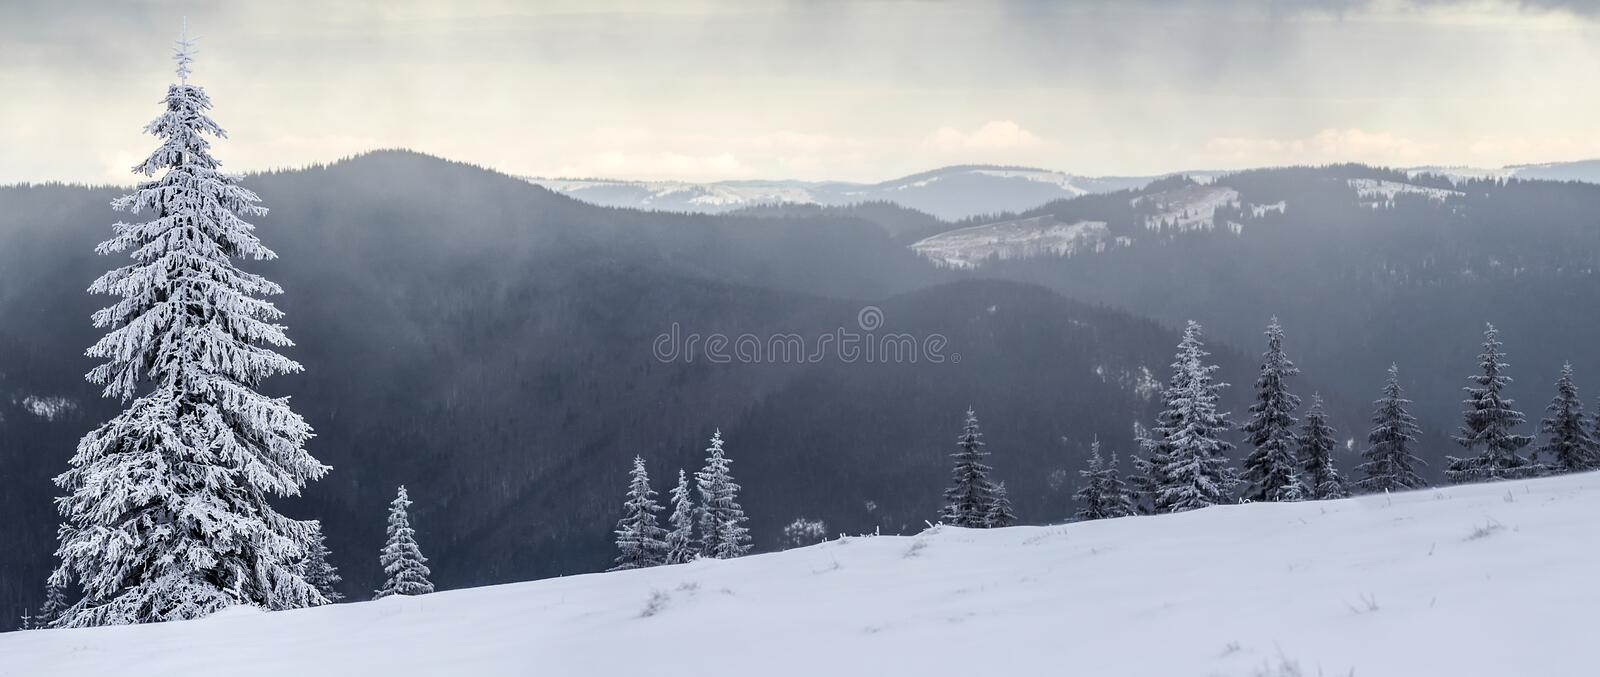 Winter mountain landscape with snow covered pine trees stock photos